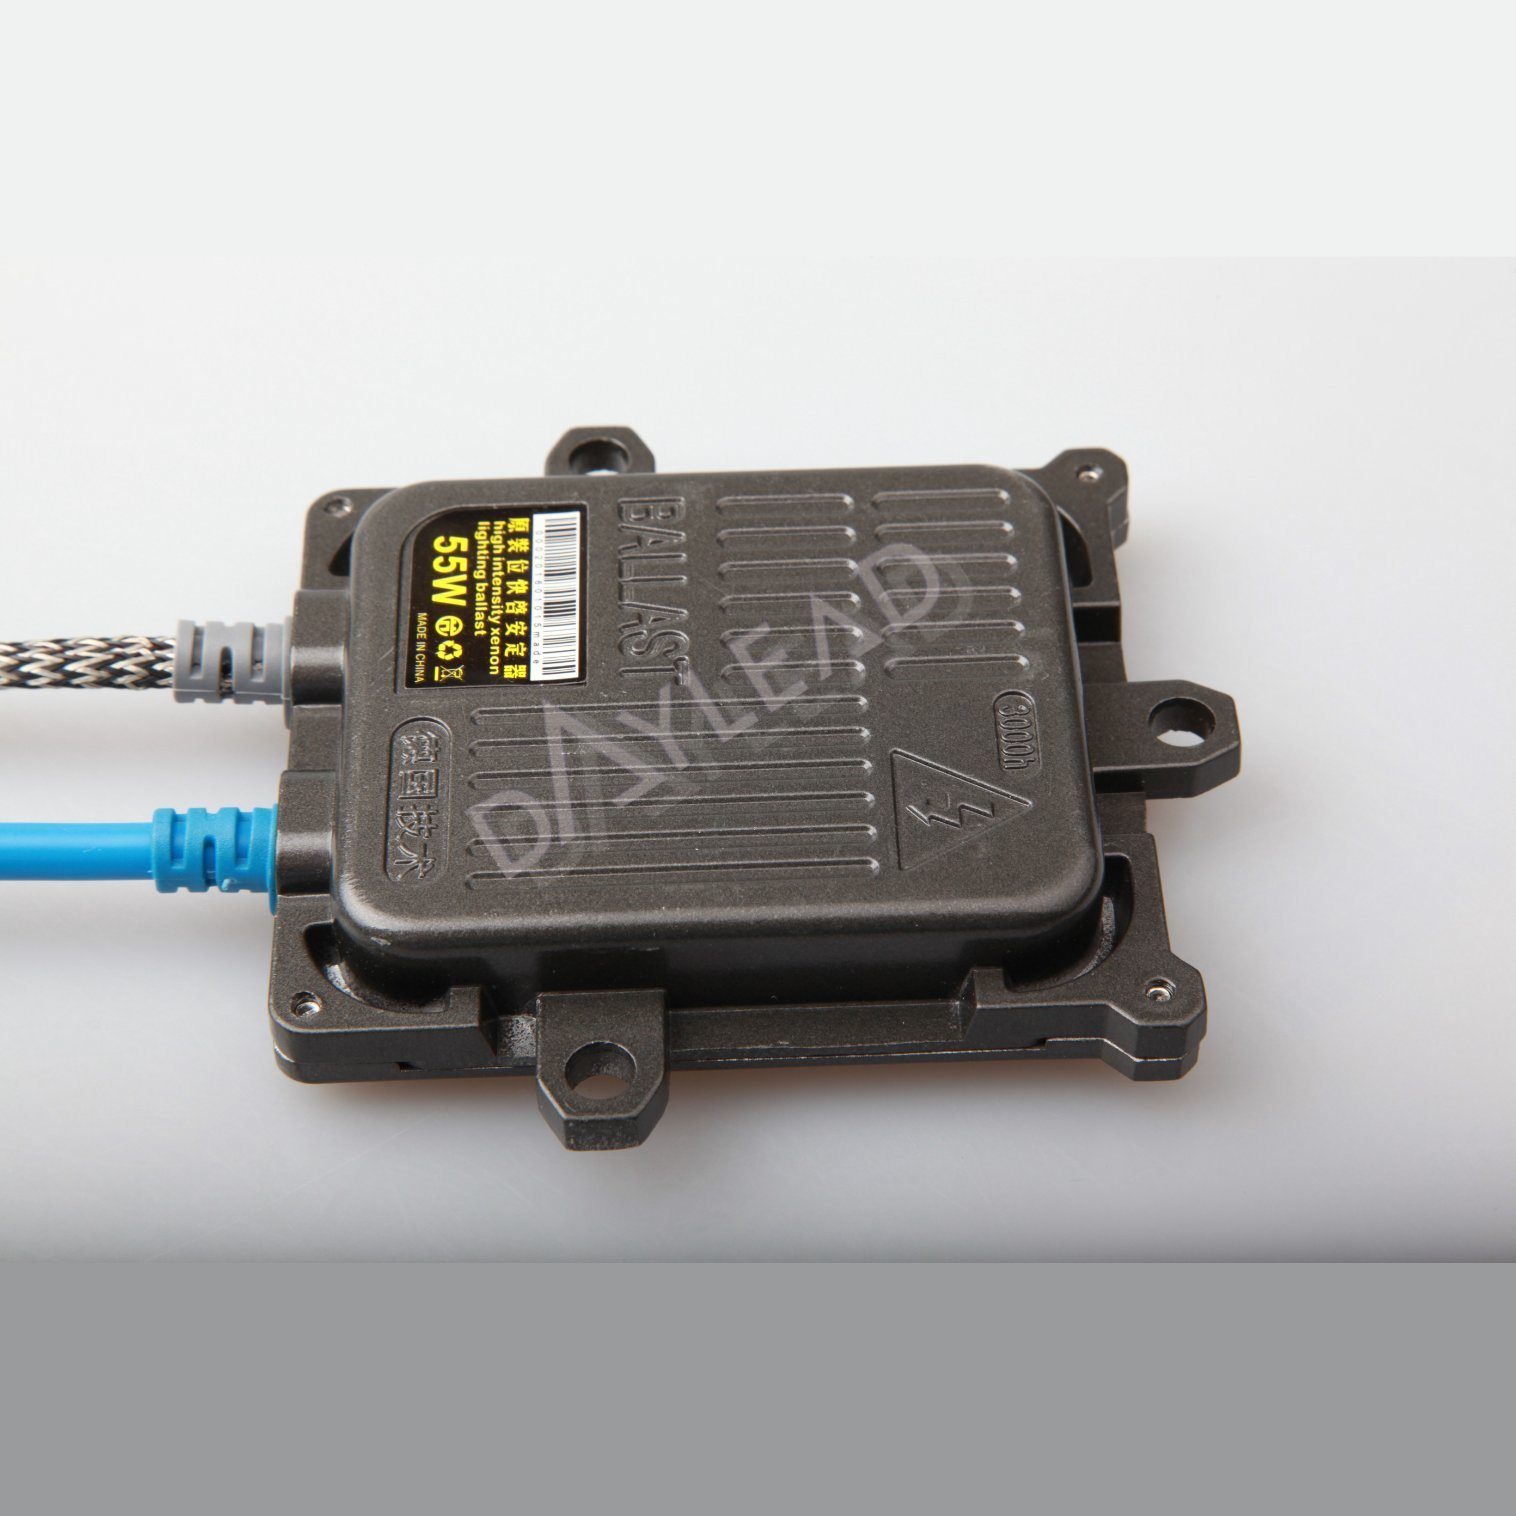 12V 55W Slim HID Ballast Xenon Ballast for Sale